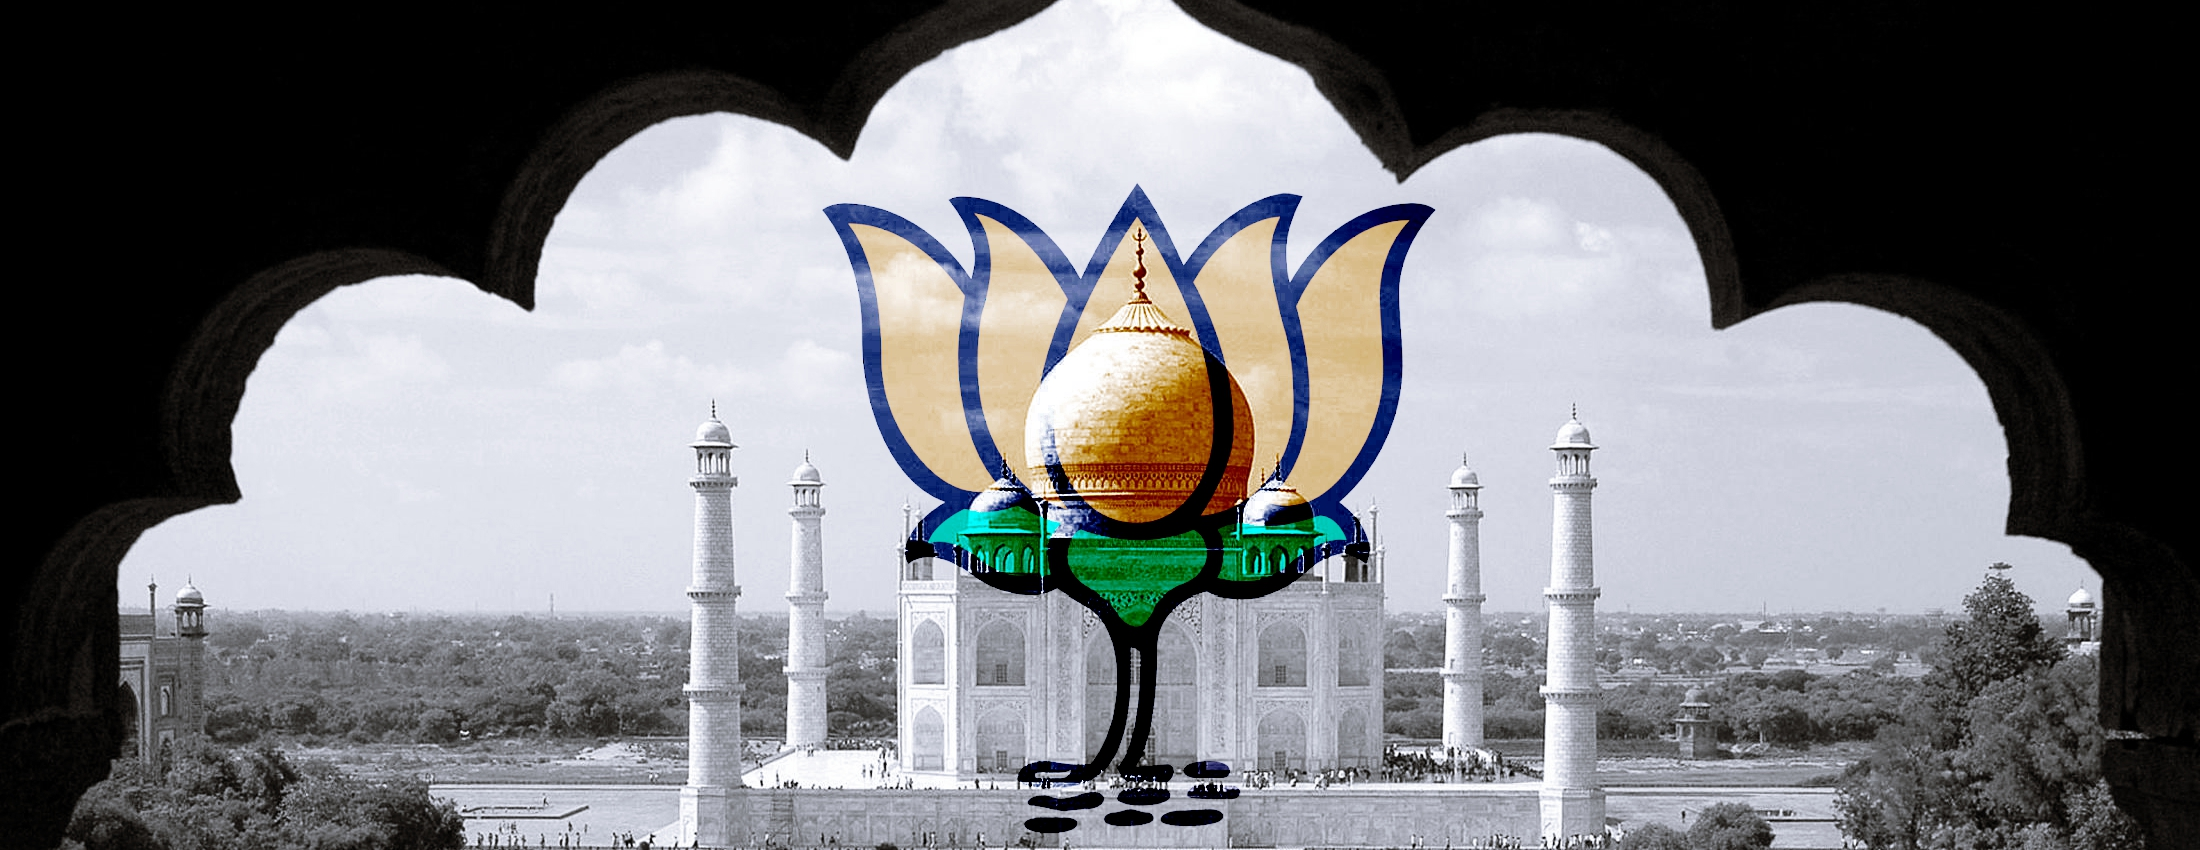 The BJP's Attack on the 'Muslim' Taj Mahal Is Part of a Wider Project